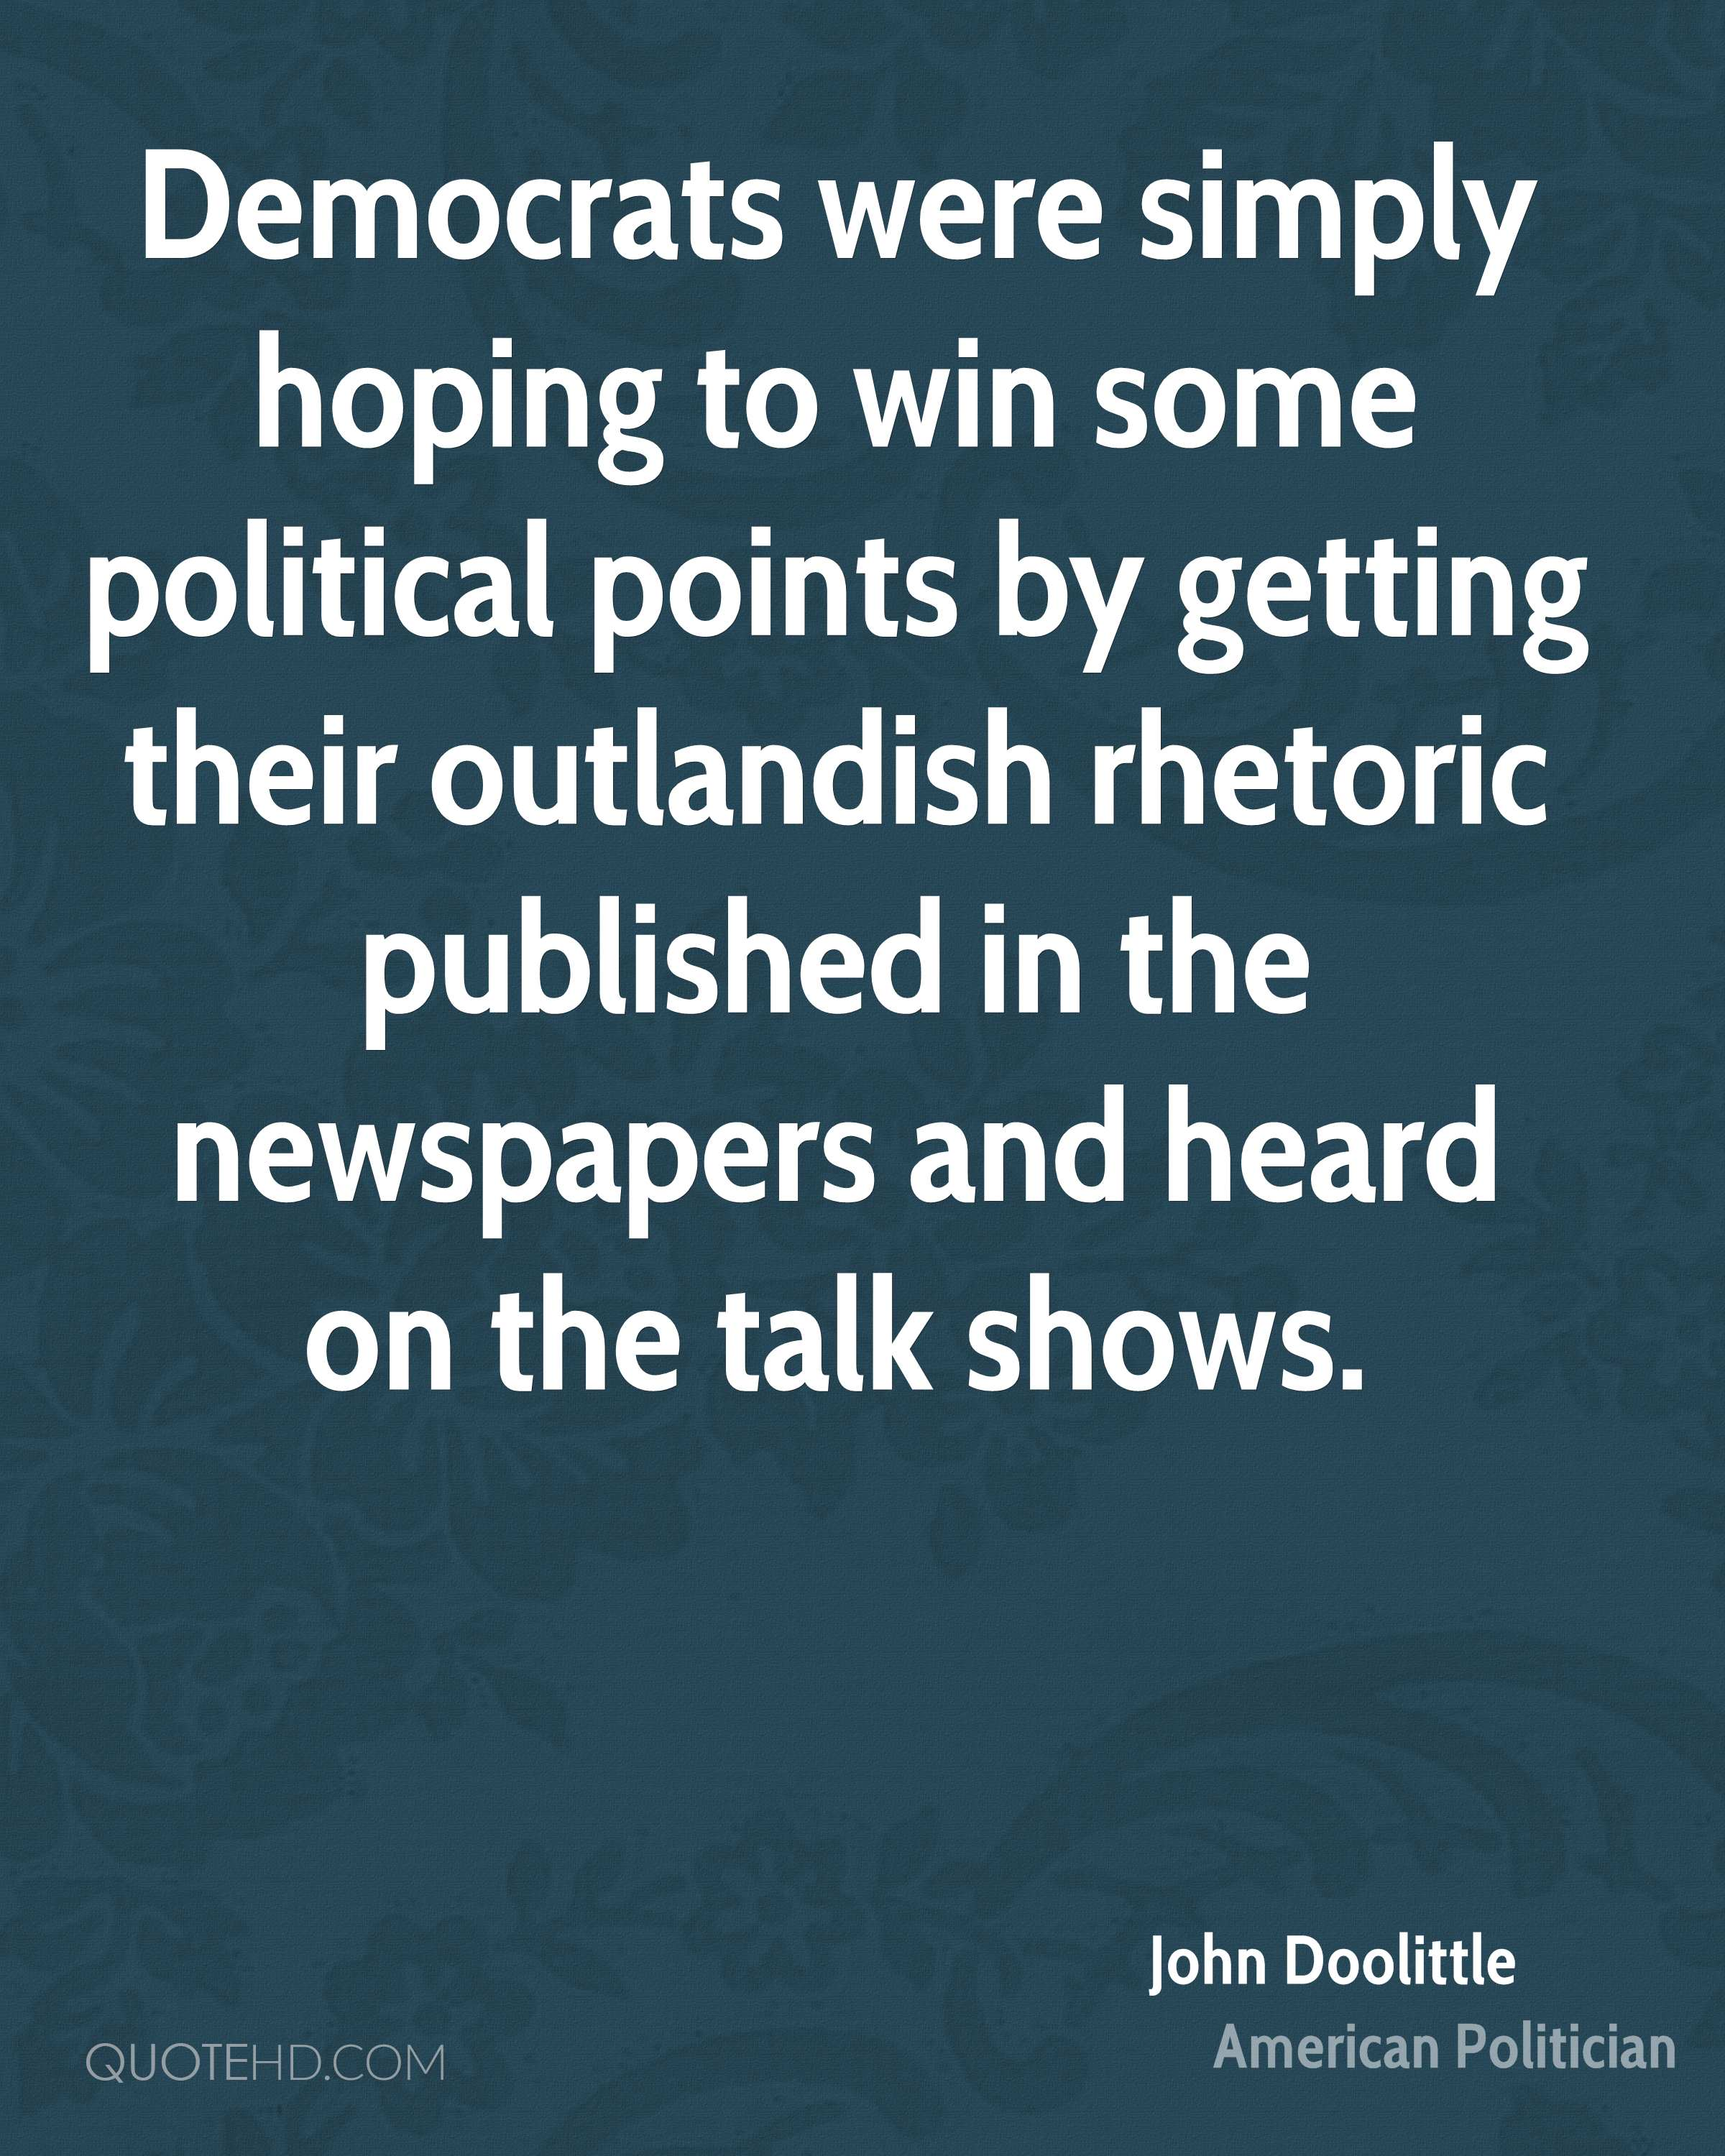 Democrats were simply hoping to win some political points by getting their outlandish rhetoric published in the newspapers and heard on the talk shows.